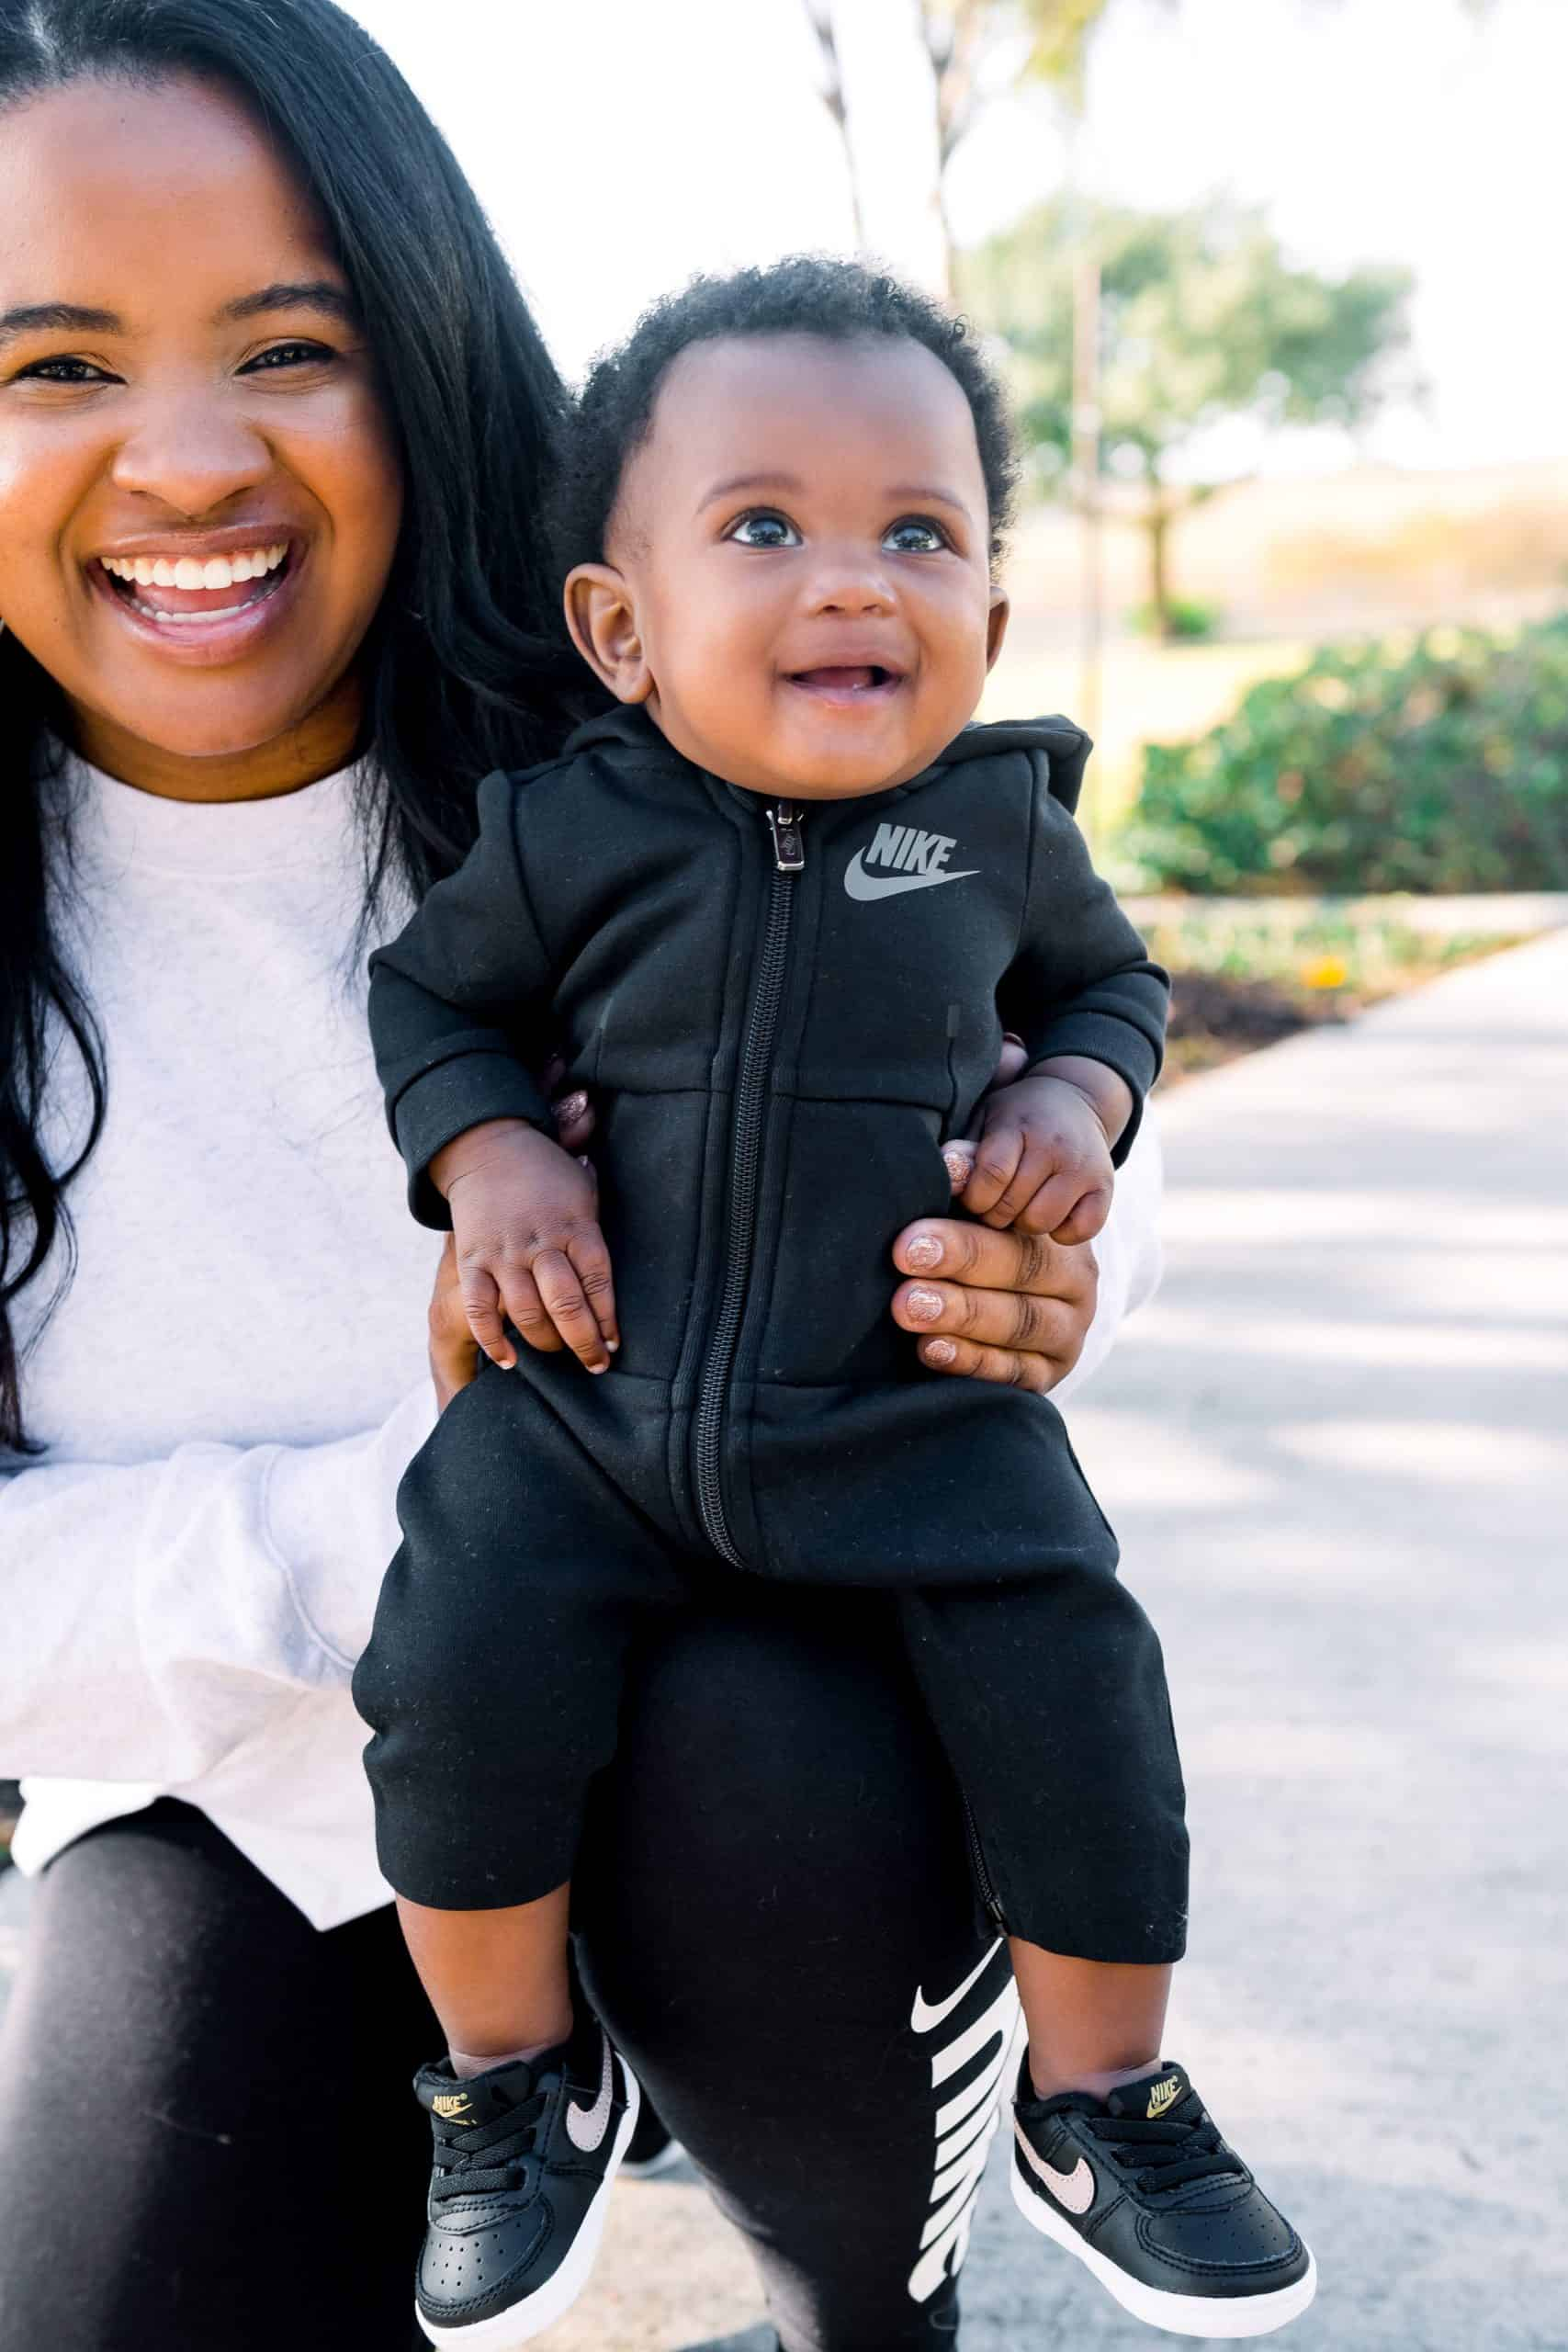 Nike Holiday by popular Dallas fashion blog, Glamorous Versatility: image of a mom and her baby wearing Nike attire and sitting together outside.